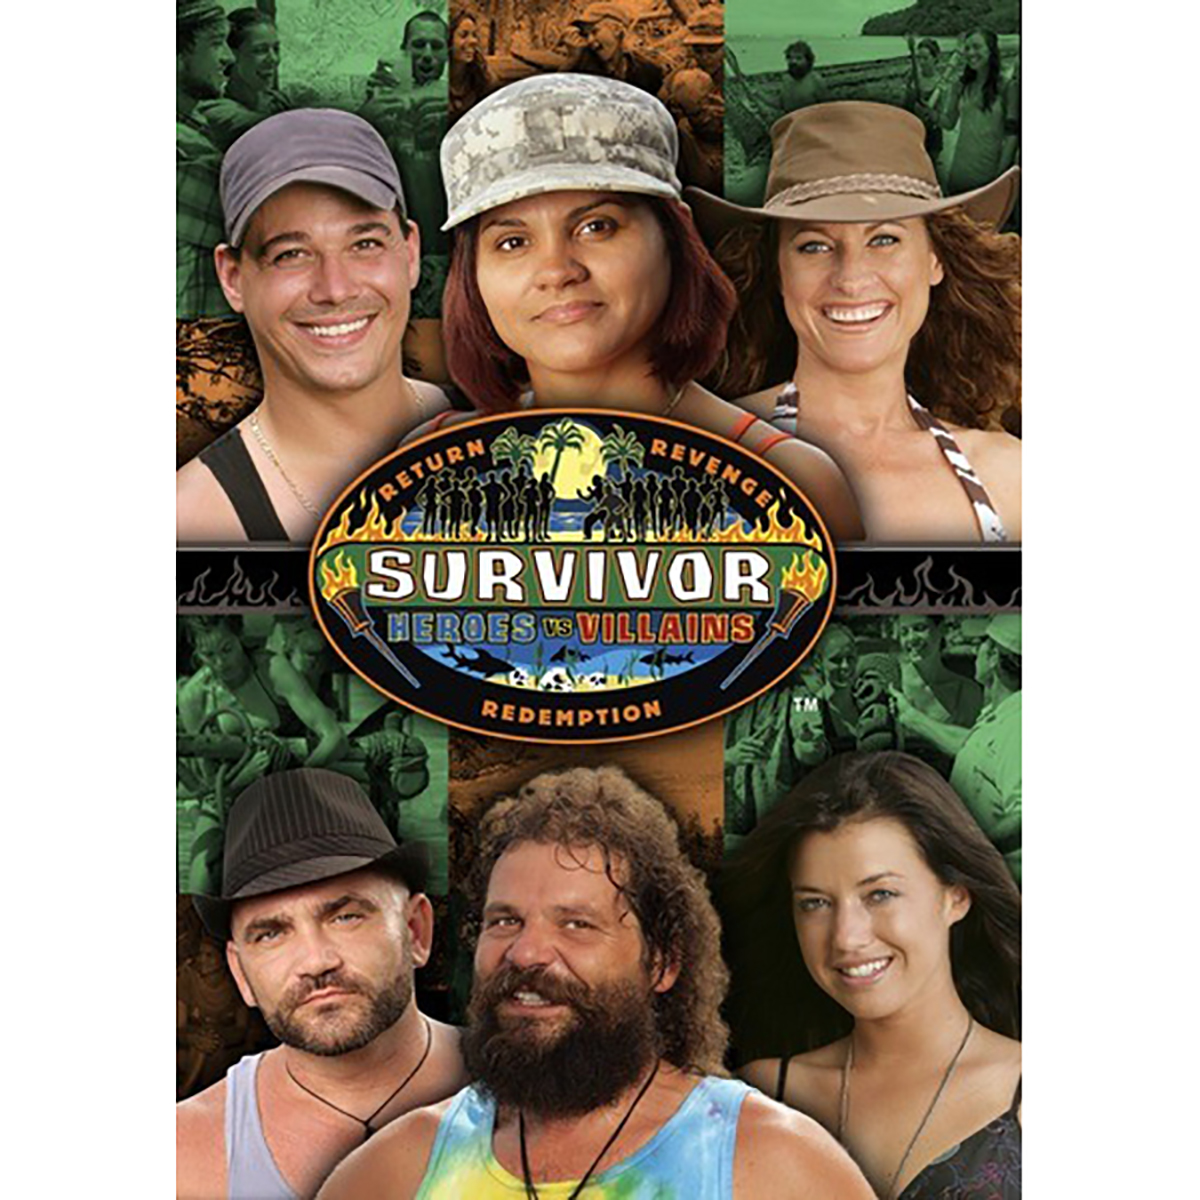 Survivor: Season 20 - Heroes vs. Villains DVD